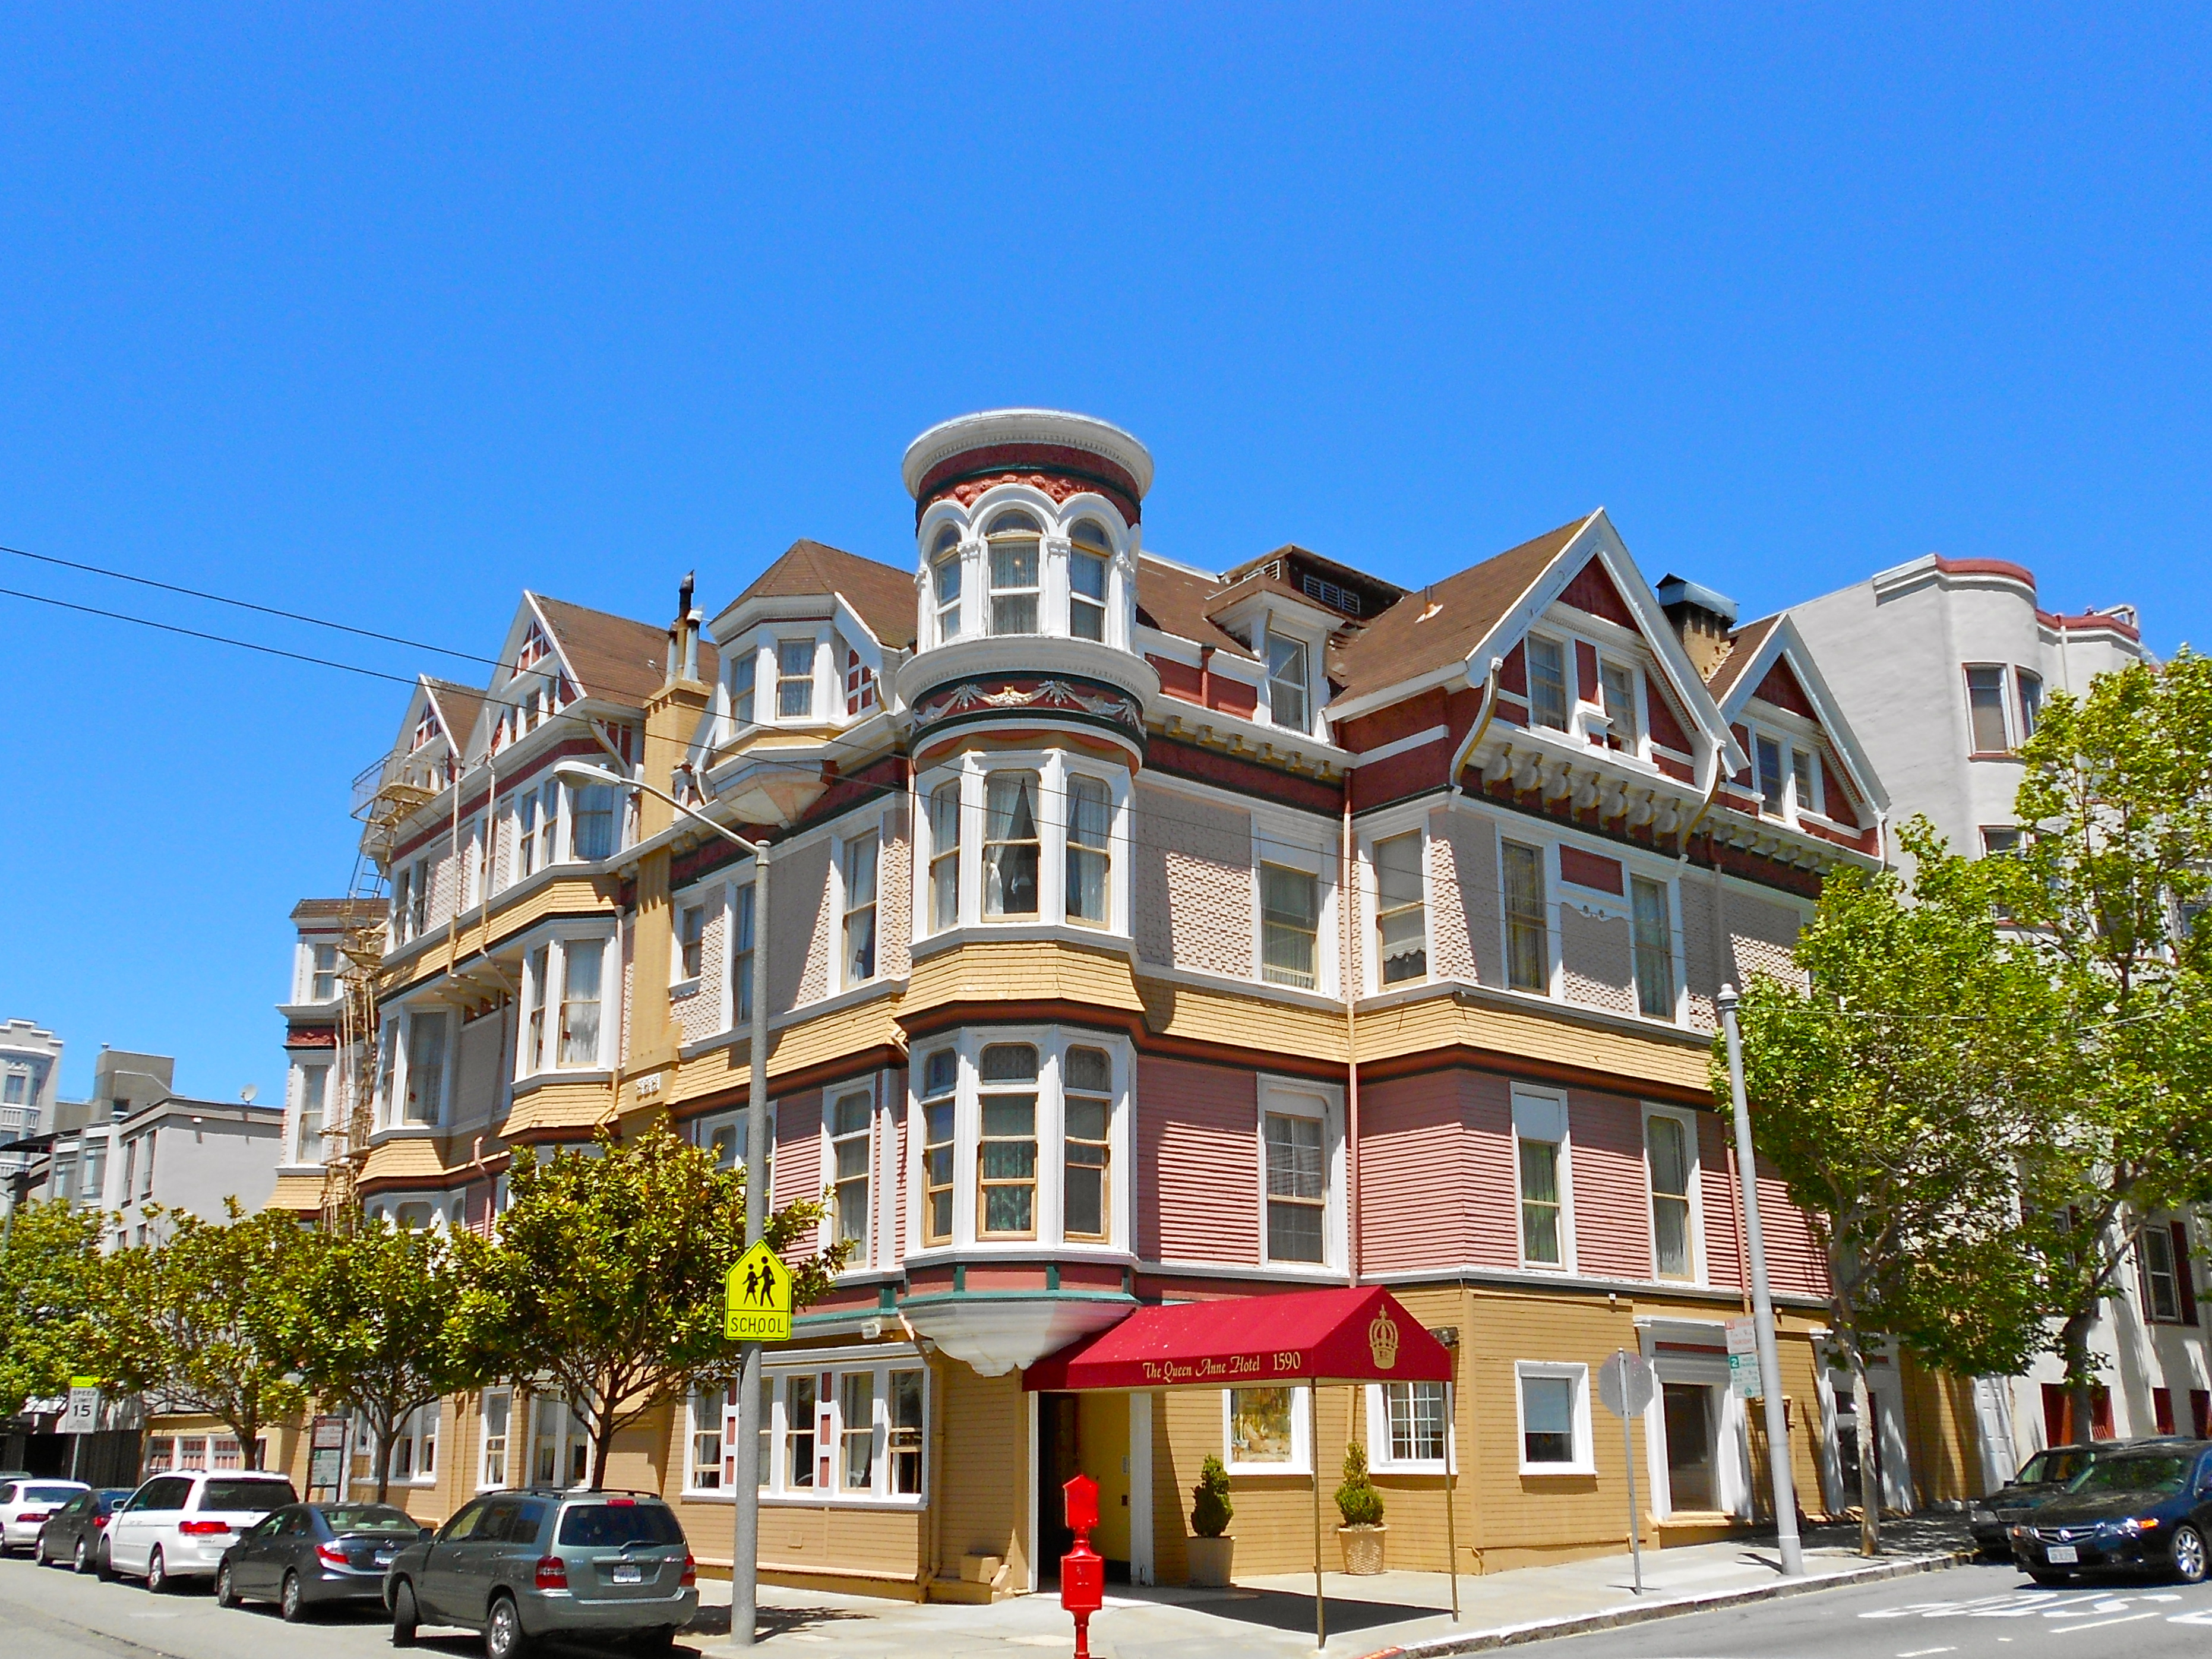 A big, yellow Victorian hotel with many bay windows.